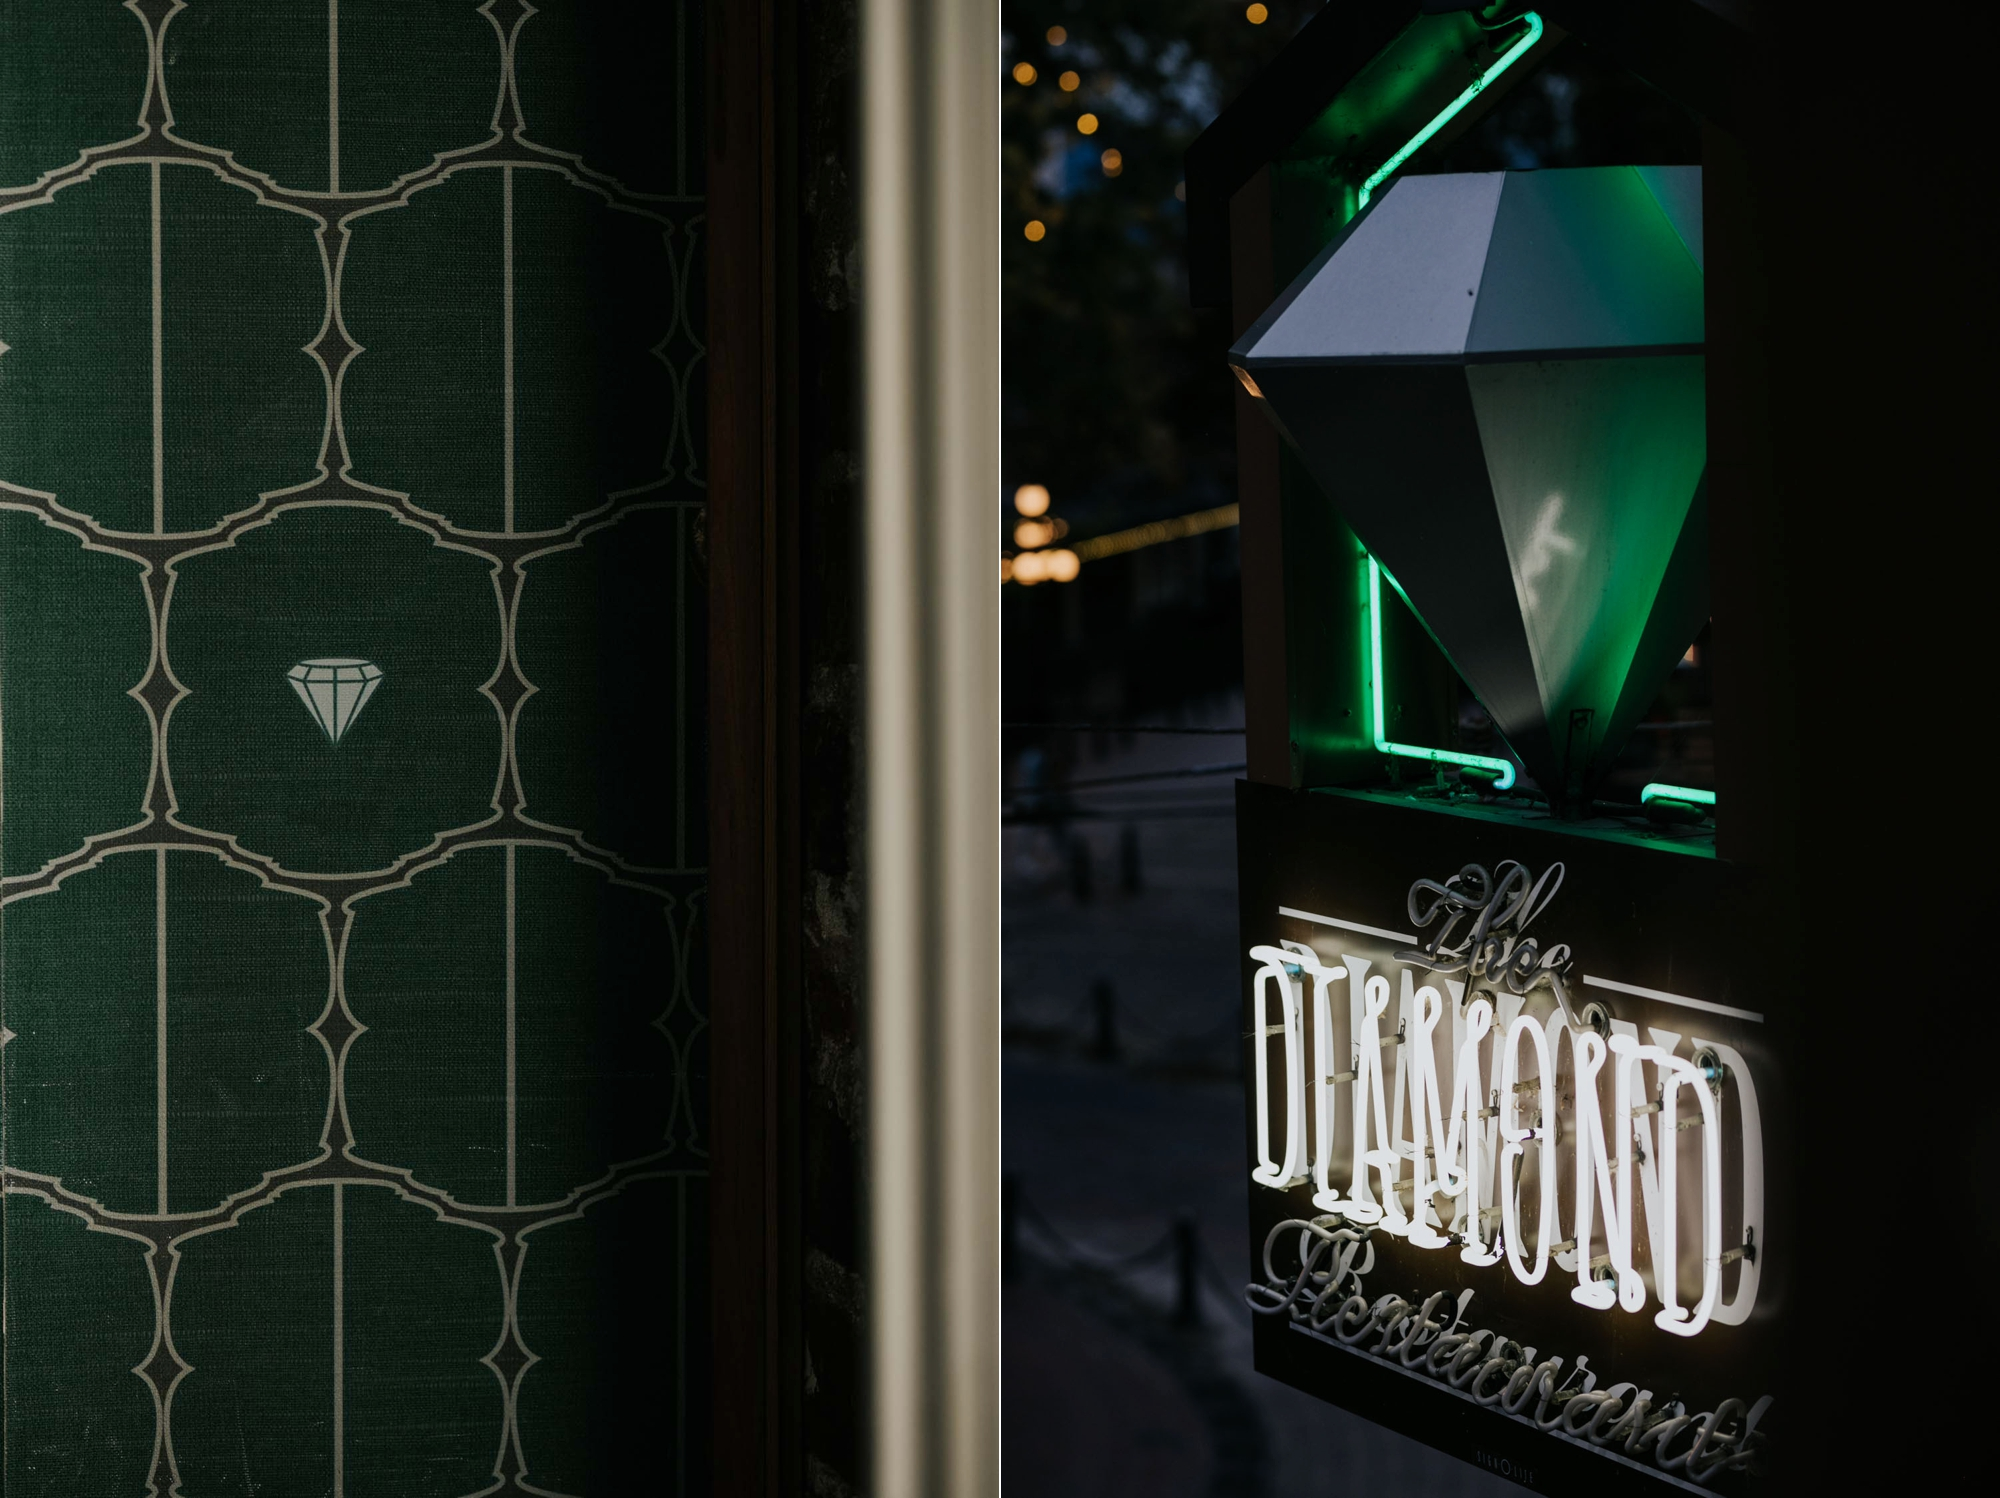 The Diamond in Gastown neon sign and wallpaper